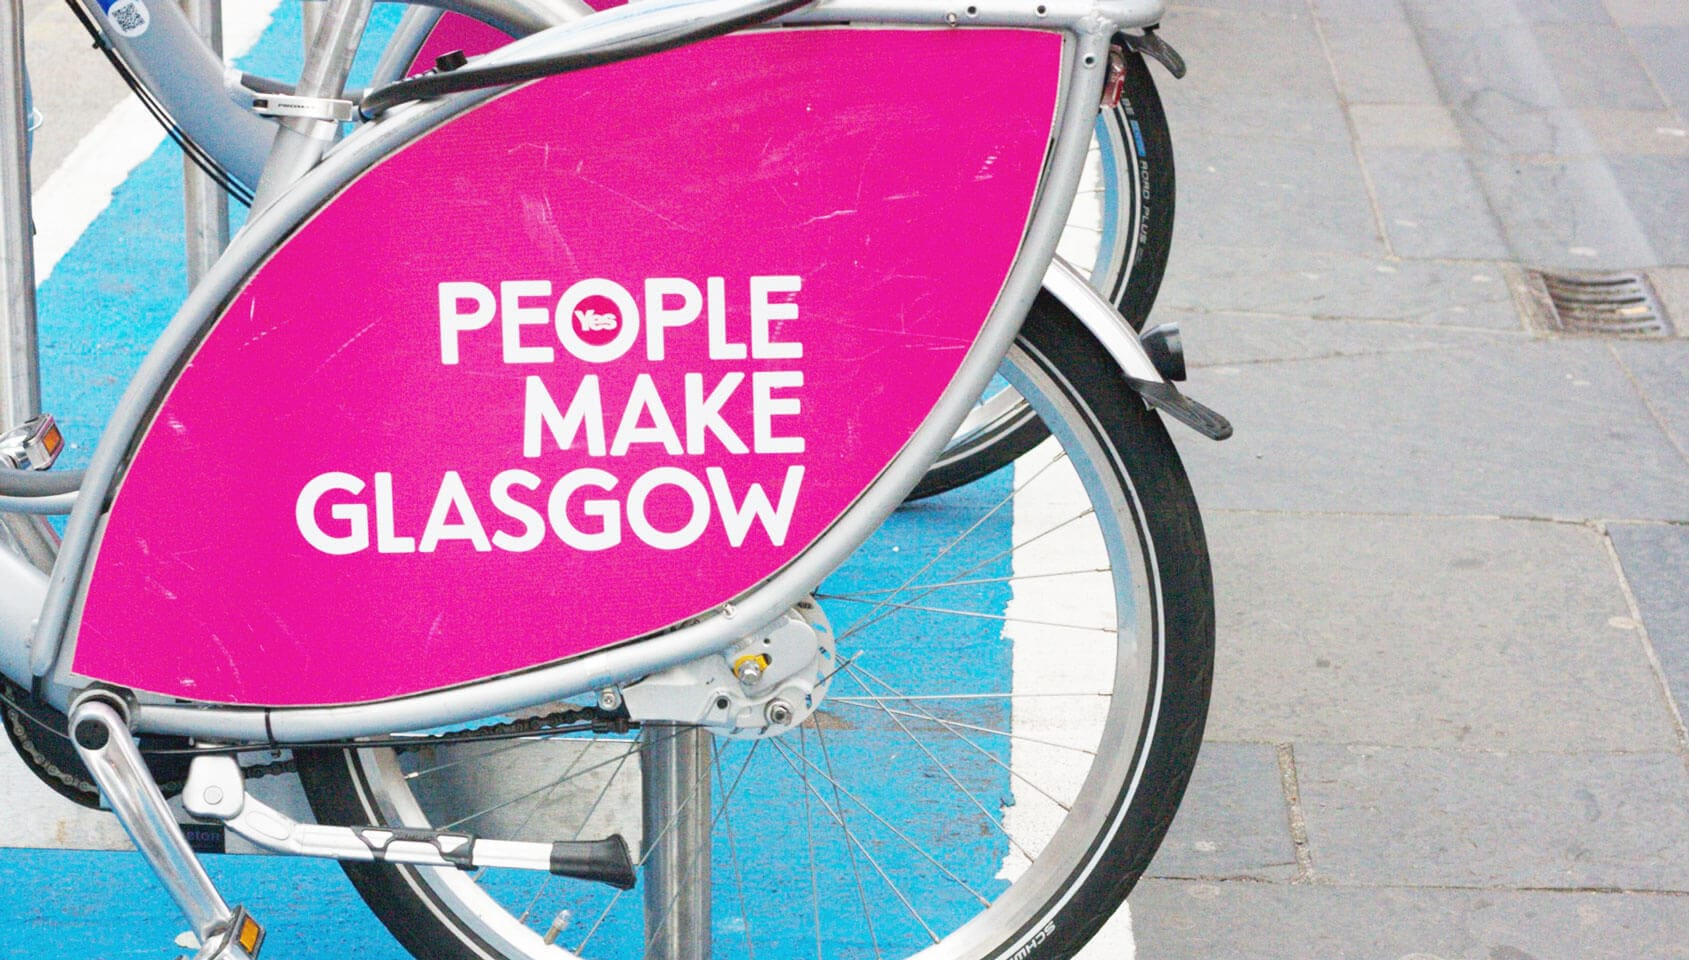 People Make Glasgow